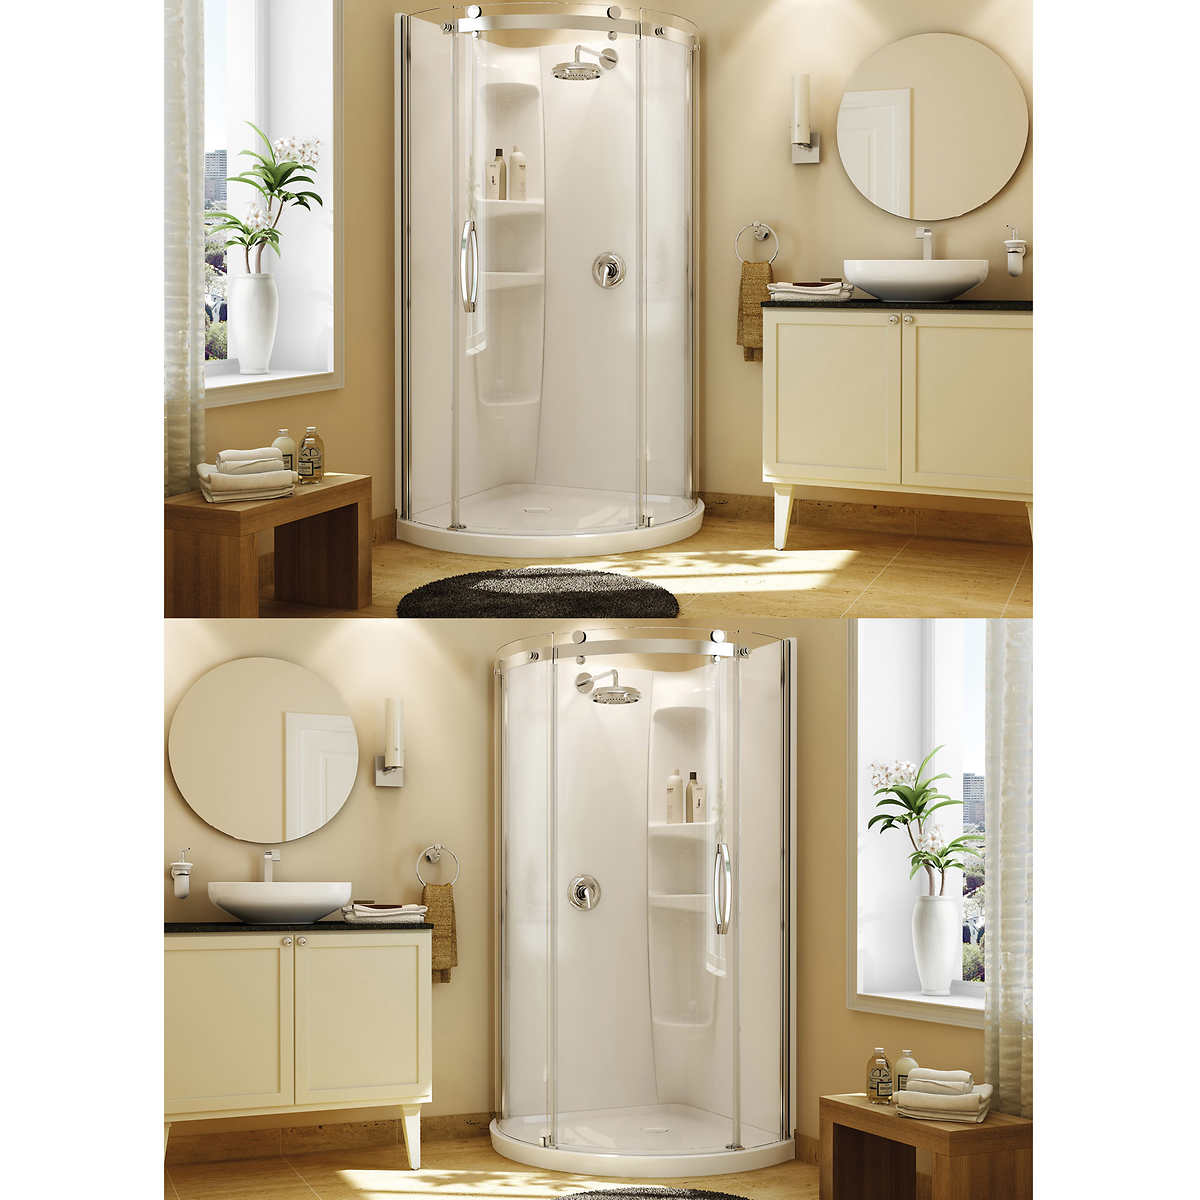 Bathroom corner shower - Maax Olympia Round Corner Shower Kits